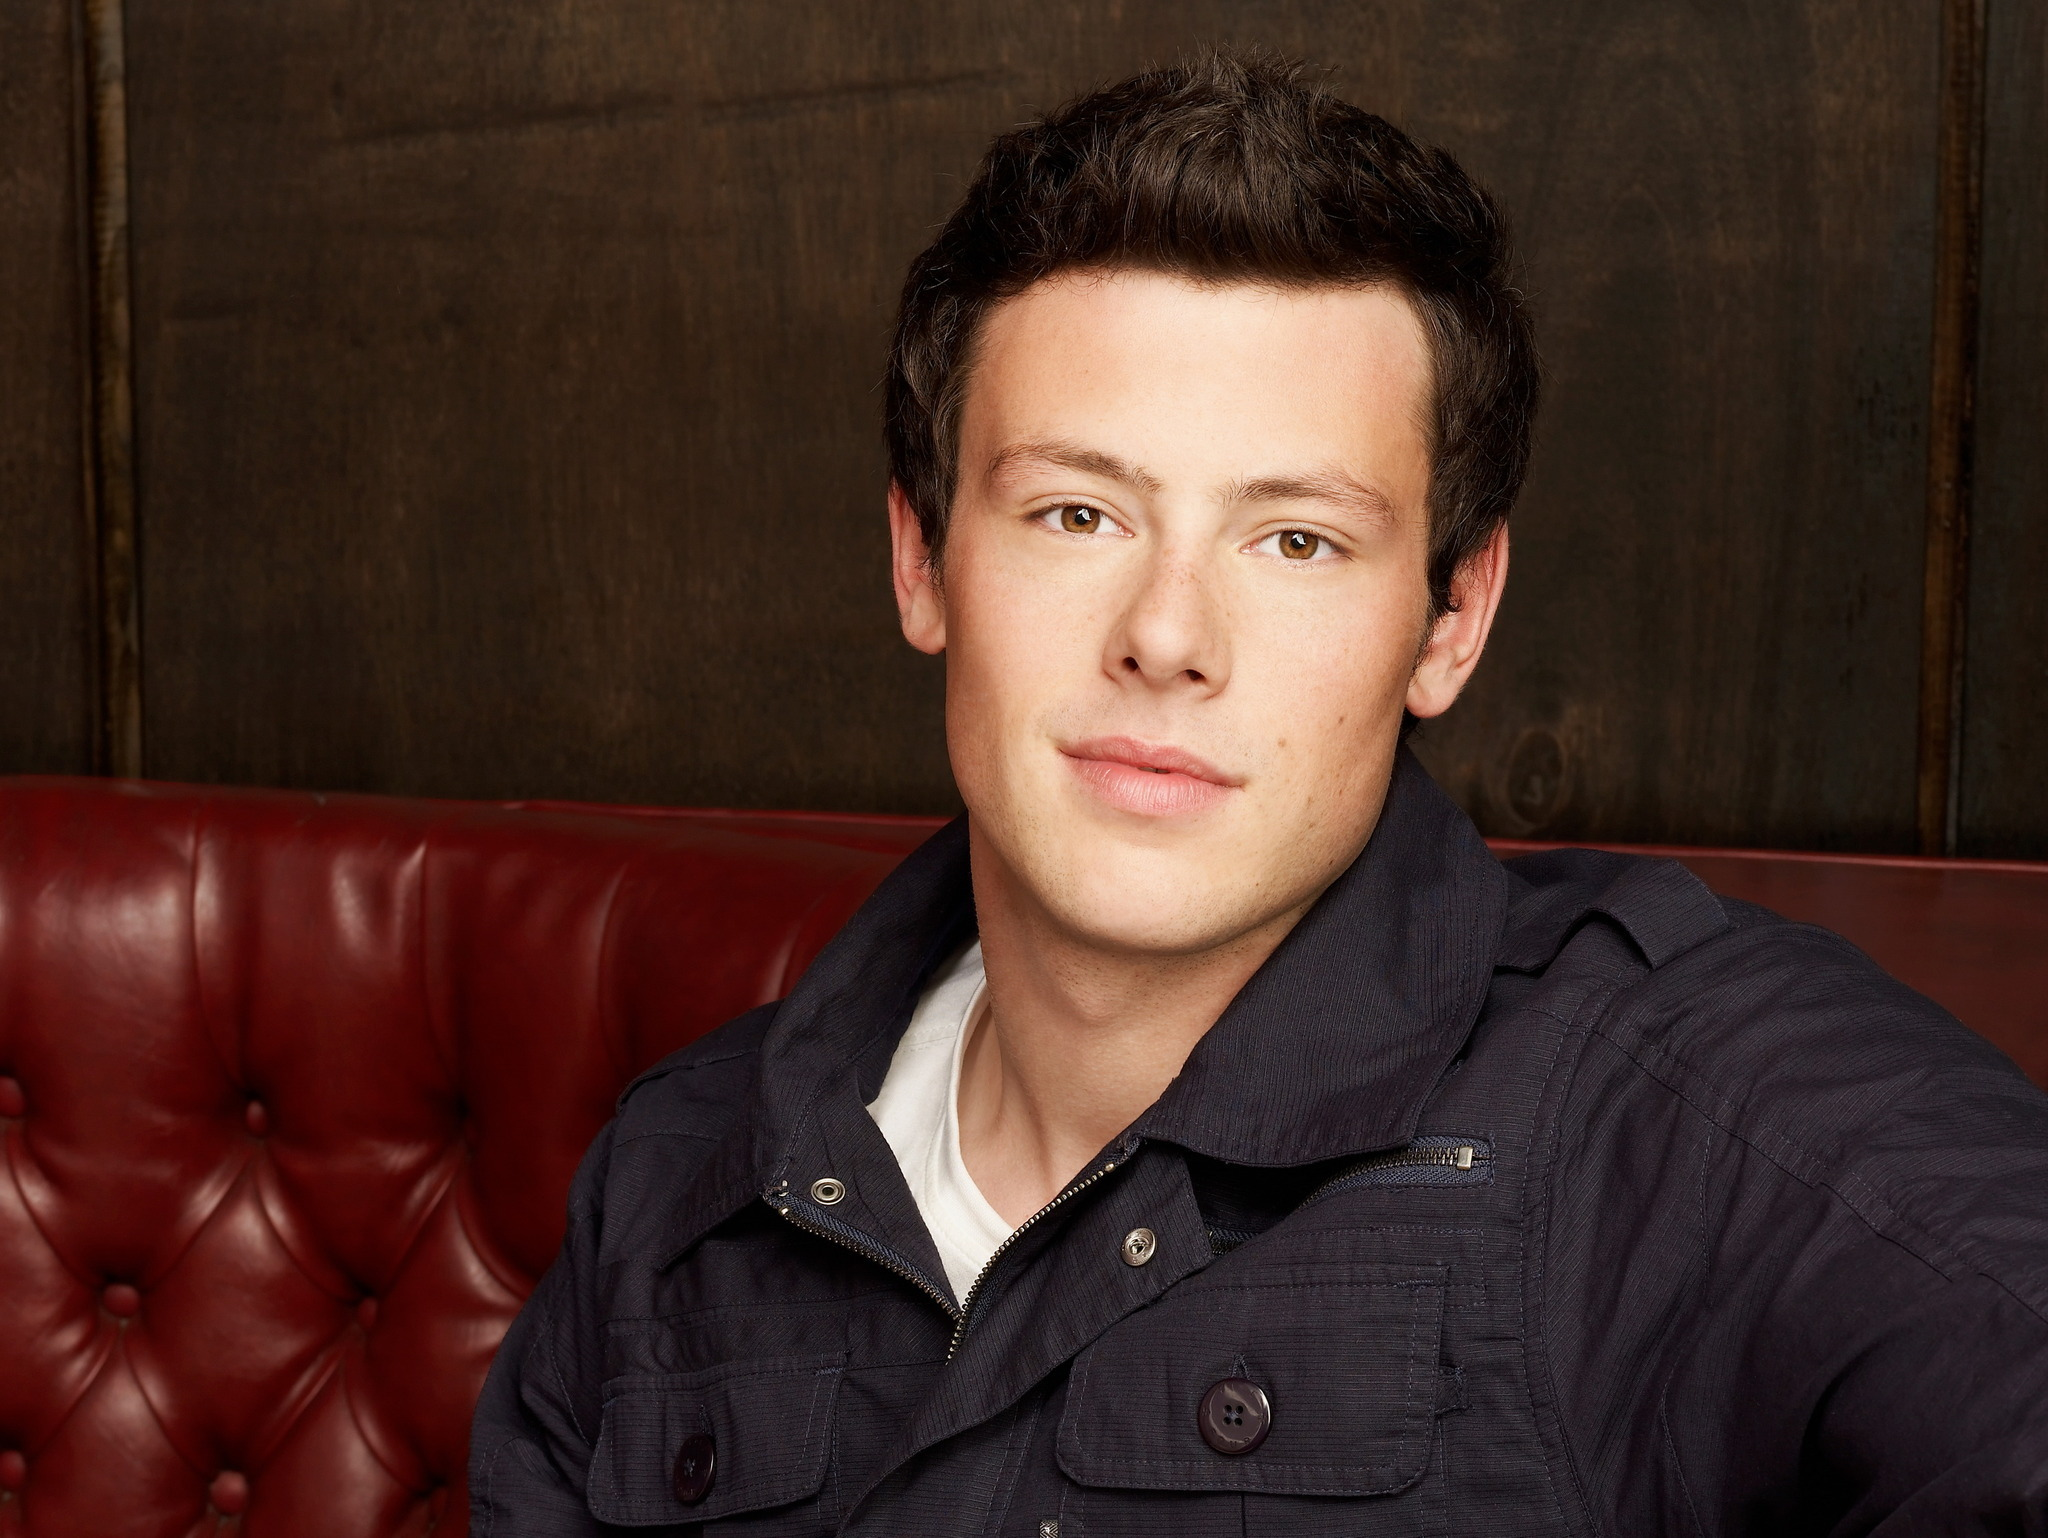 finn   glee photo 7539764   fanpop